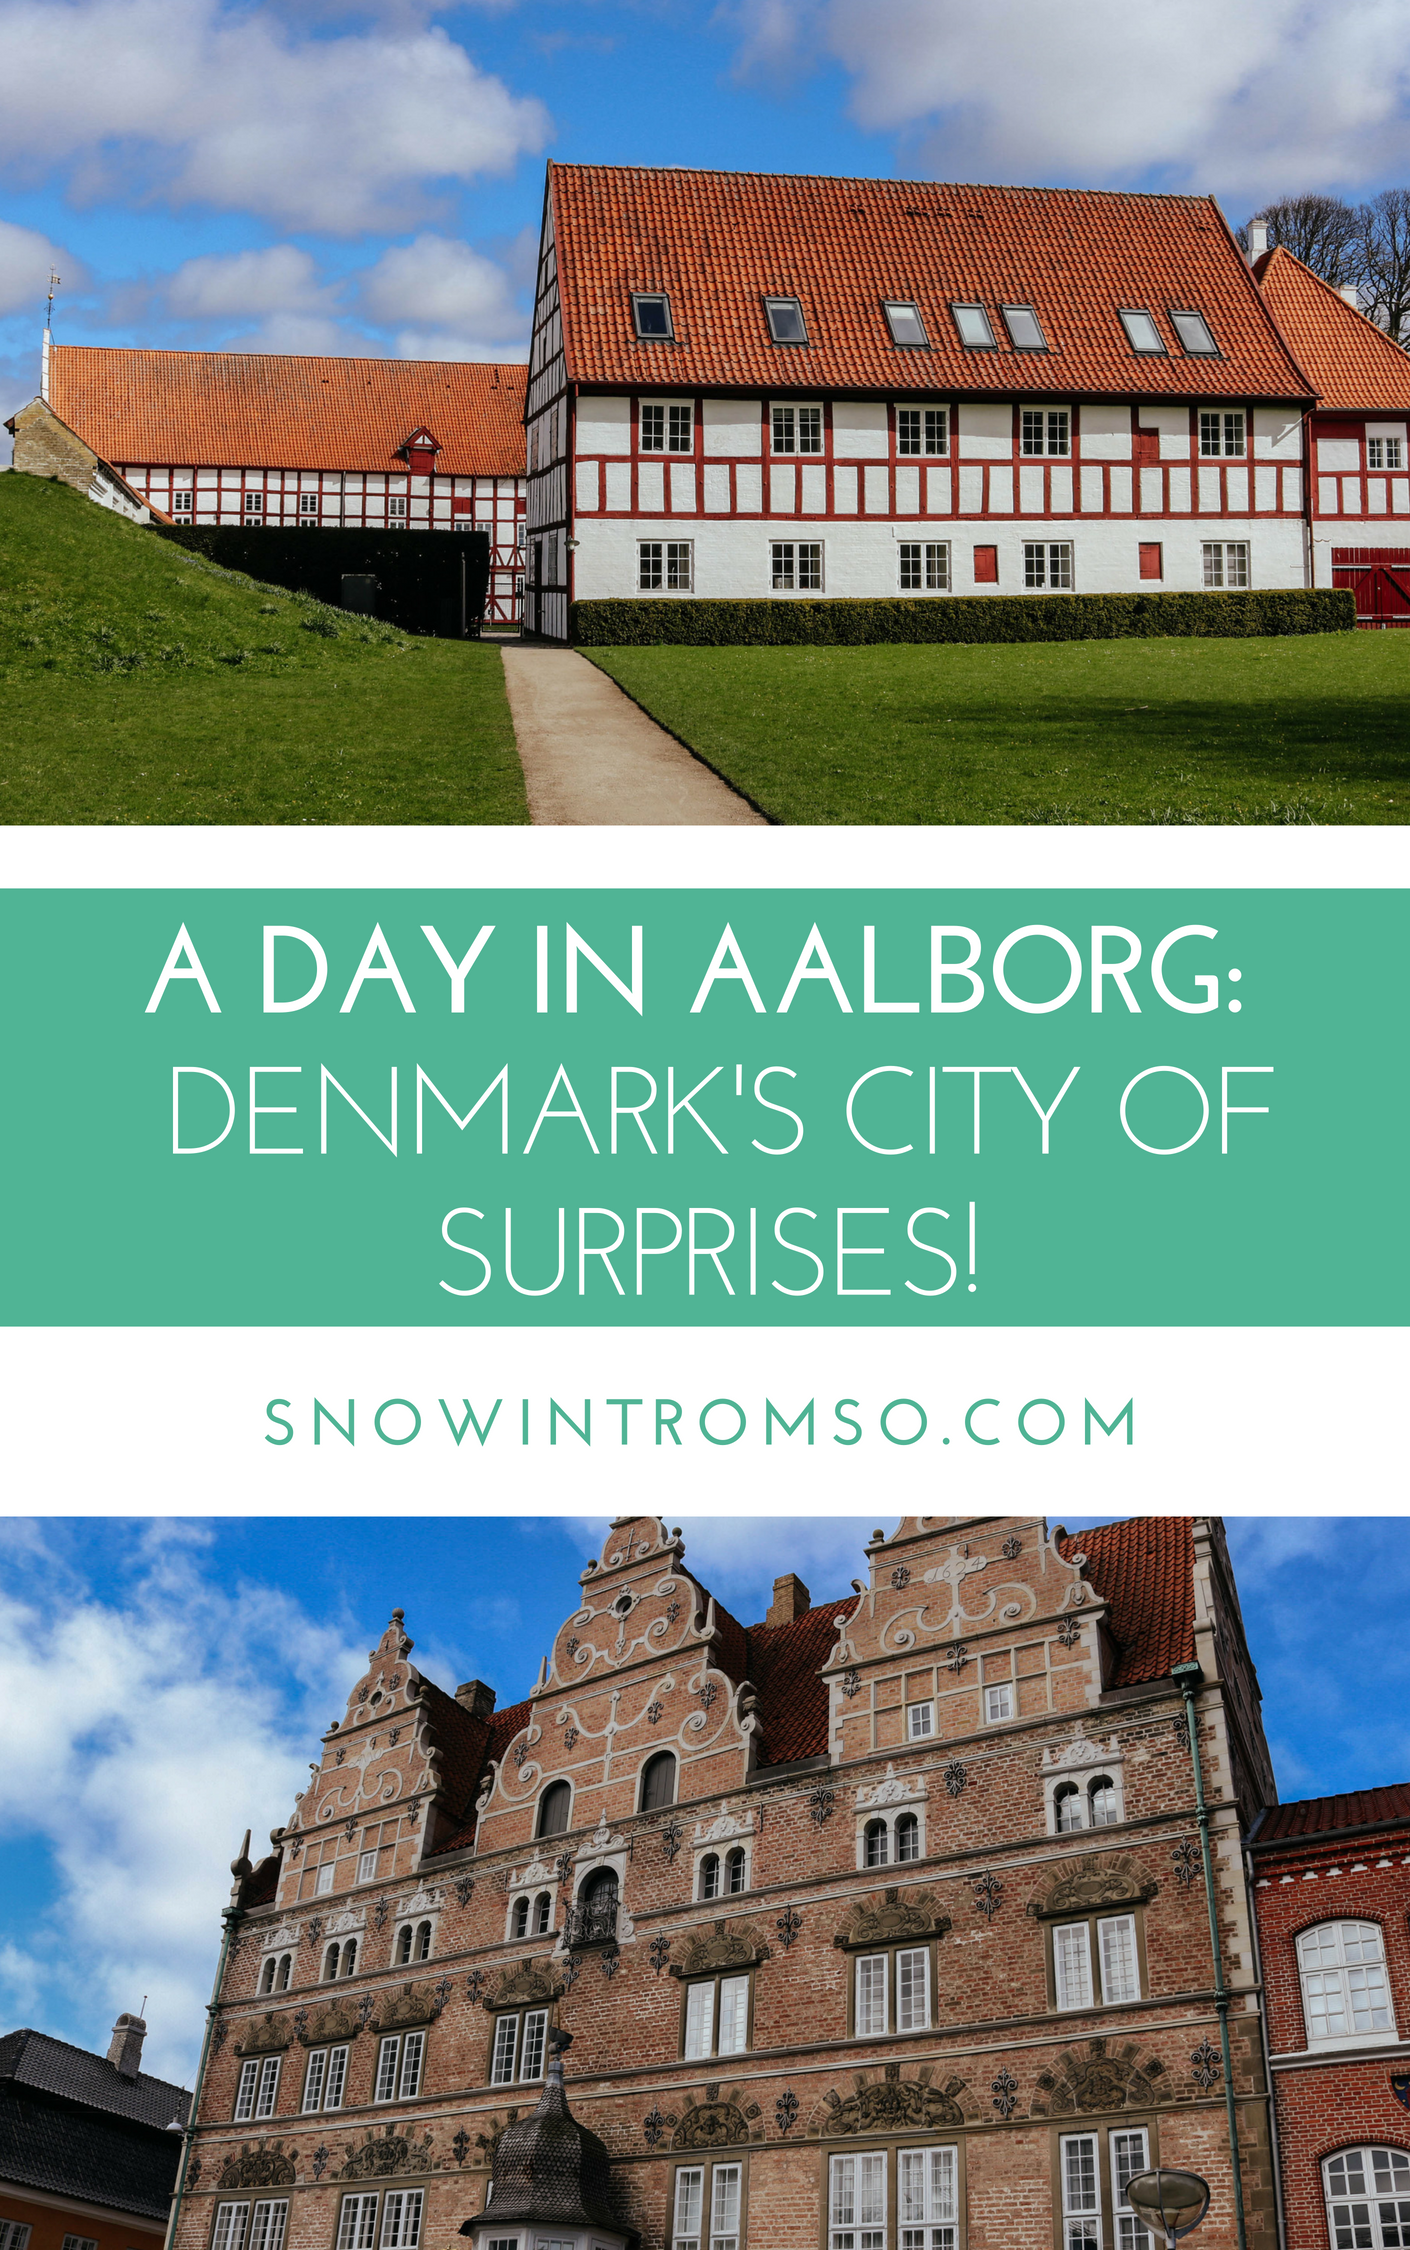 Looking for a weekend getaway in Denmark? Click through to the article to find out why Aalborg might be the perfect place!